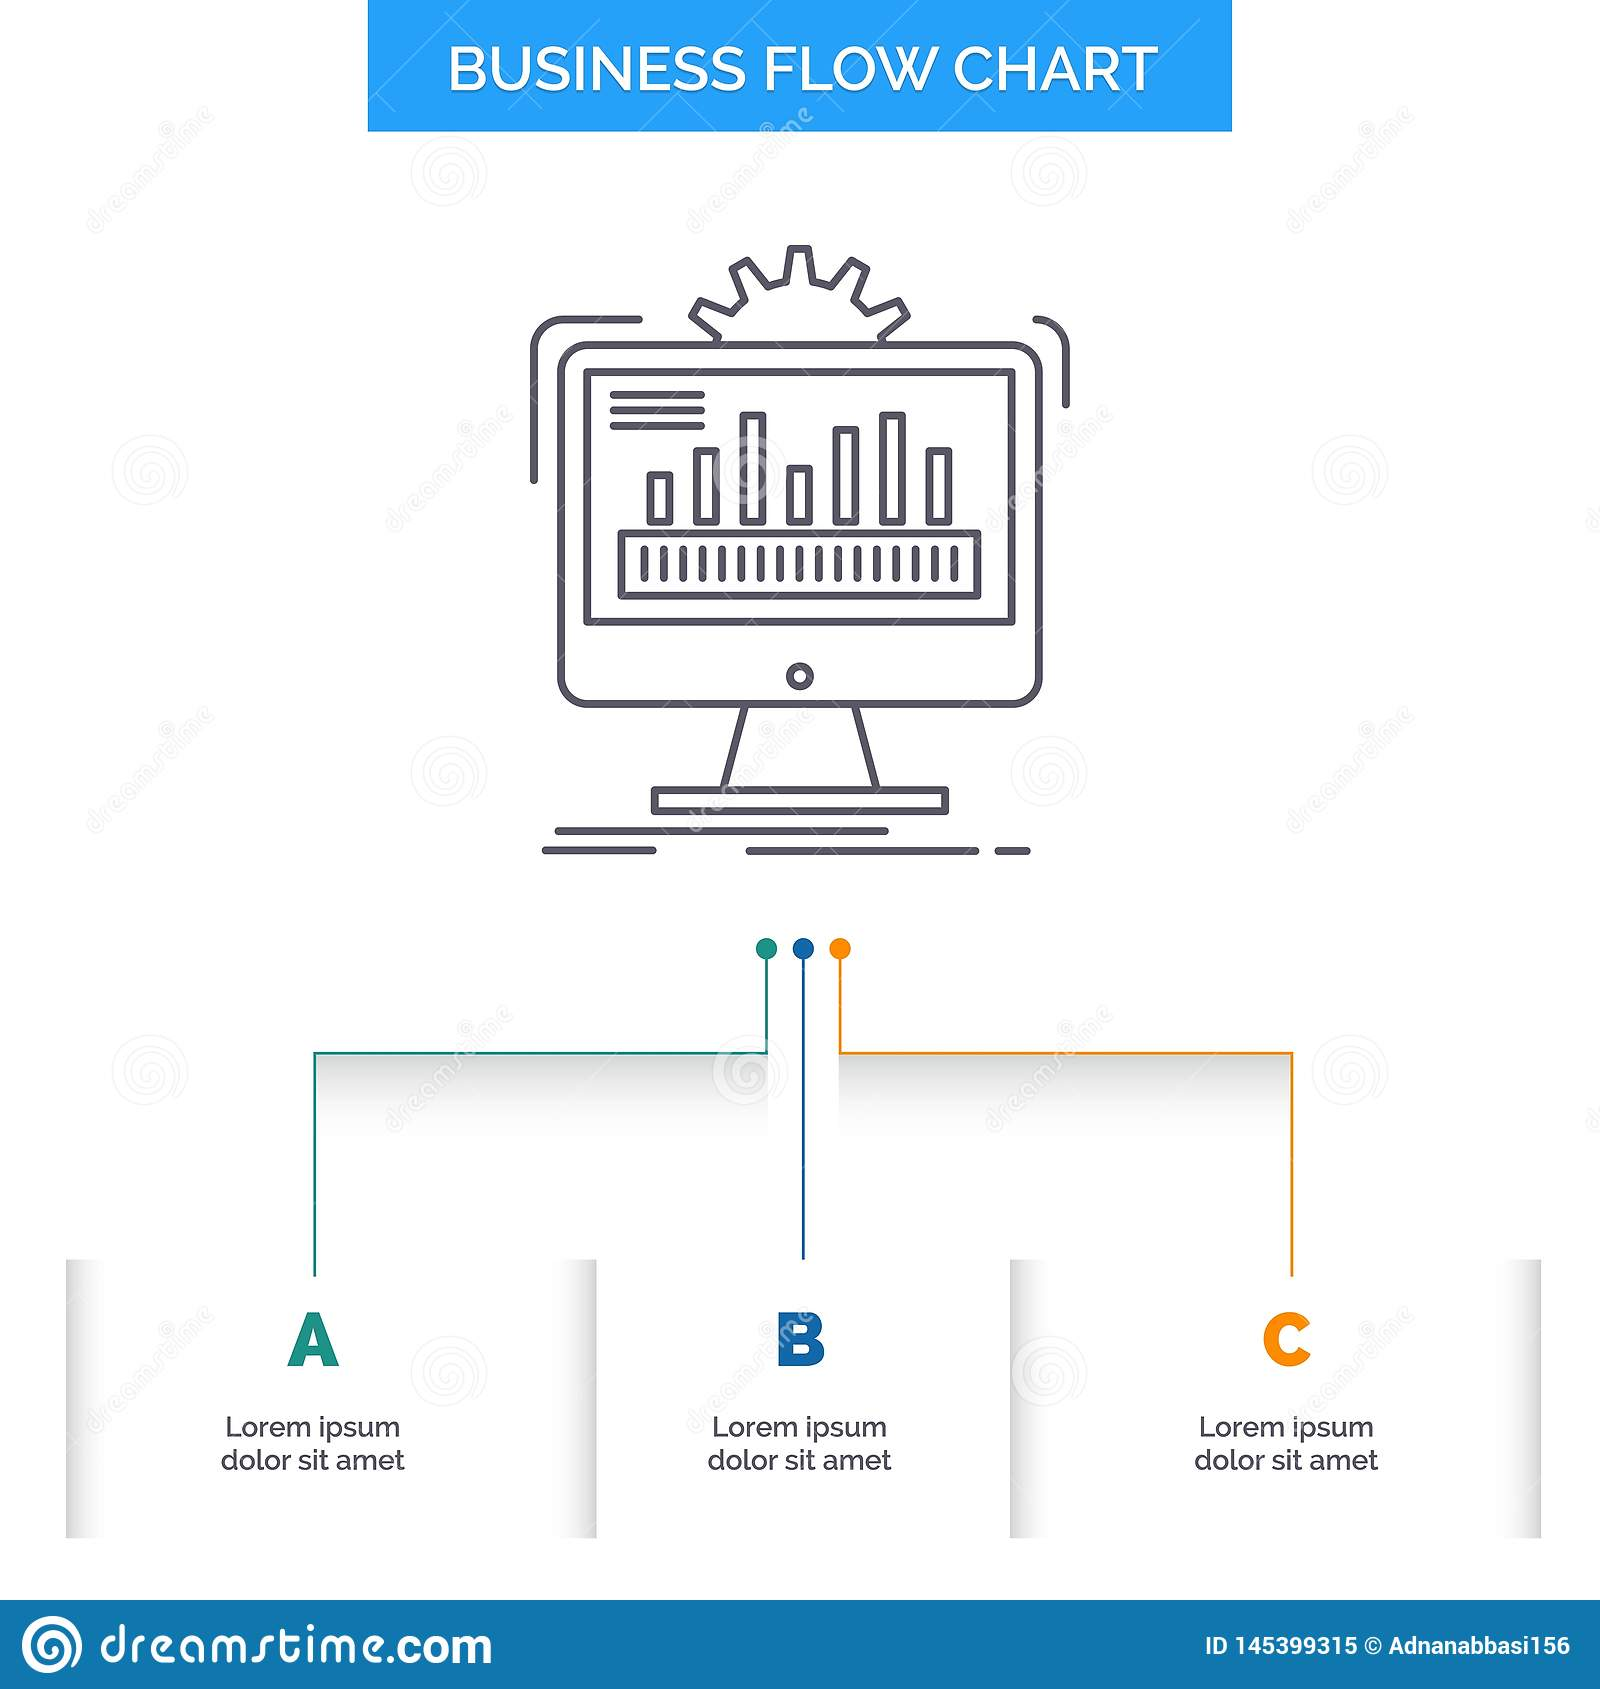 dashboard, admin, monitor, monitoring, processing business flow chart  design with 3 steps  line icon for presentation background template place  for text